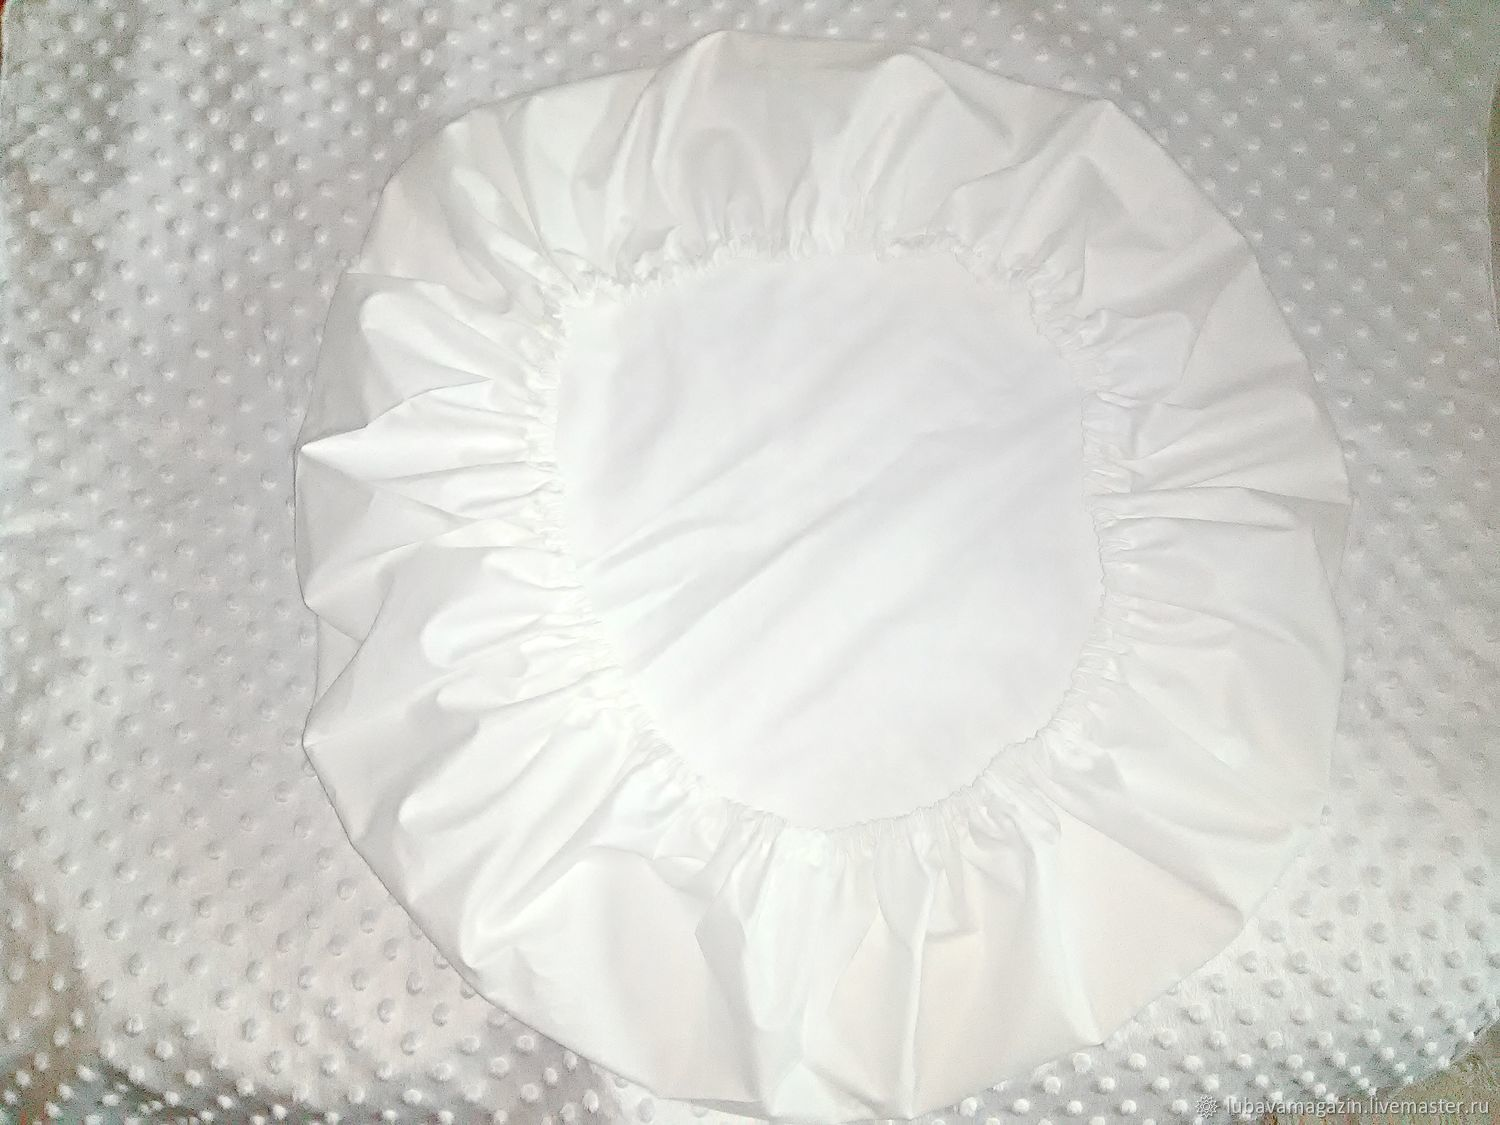 Sheets for round bed, Envelopes for discharge, Ufa,  Фото №1